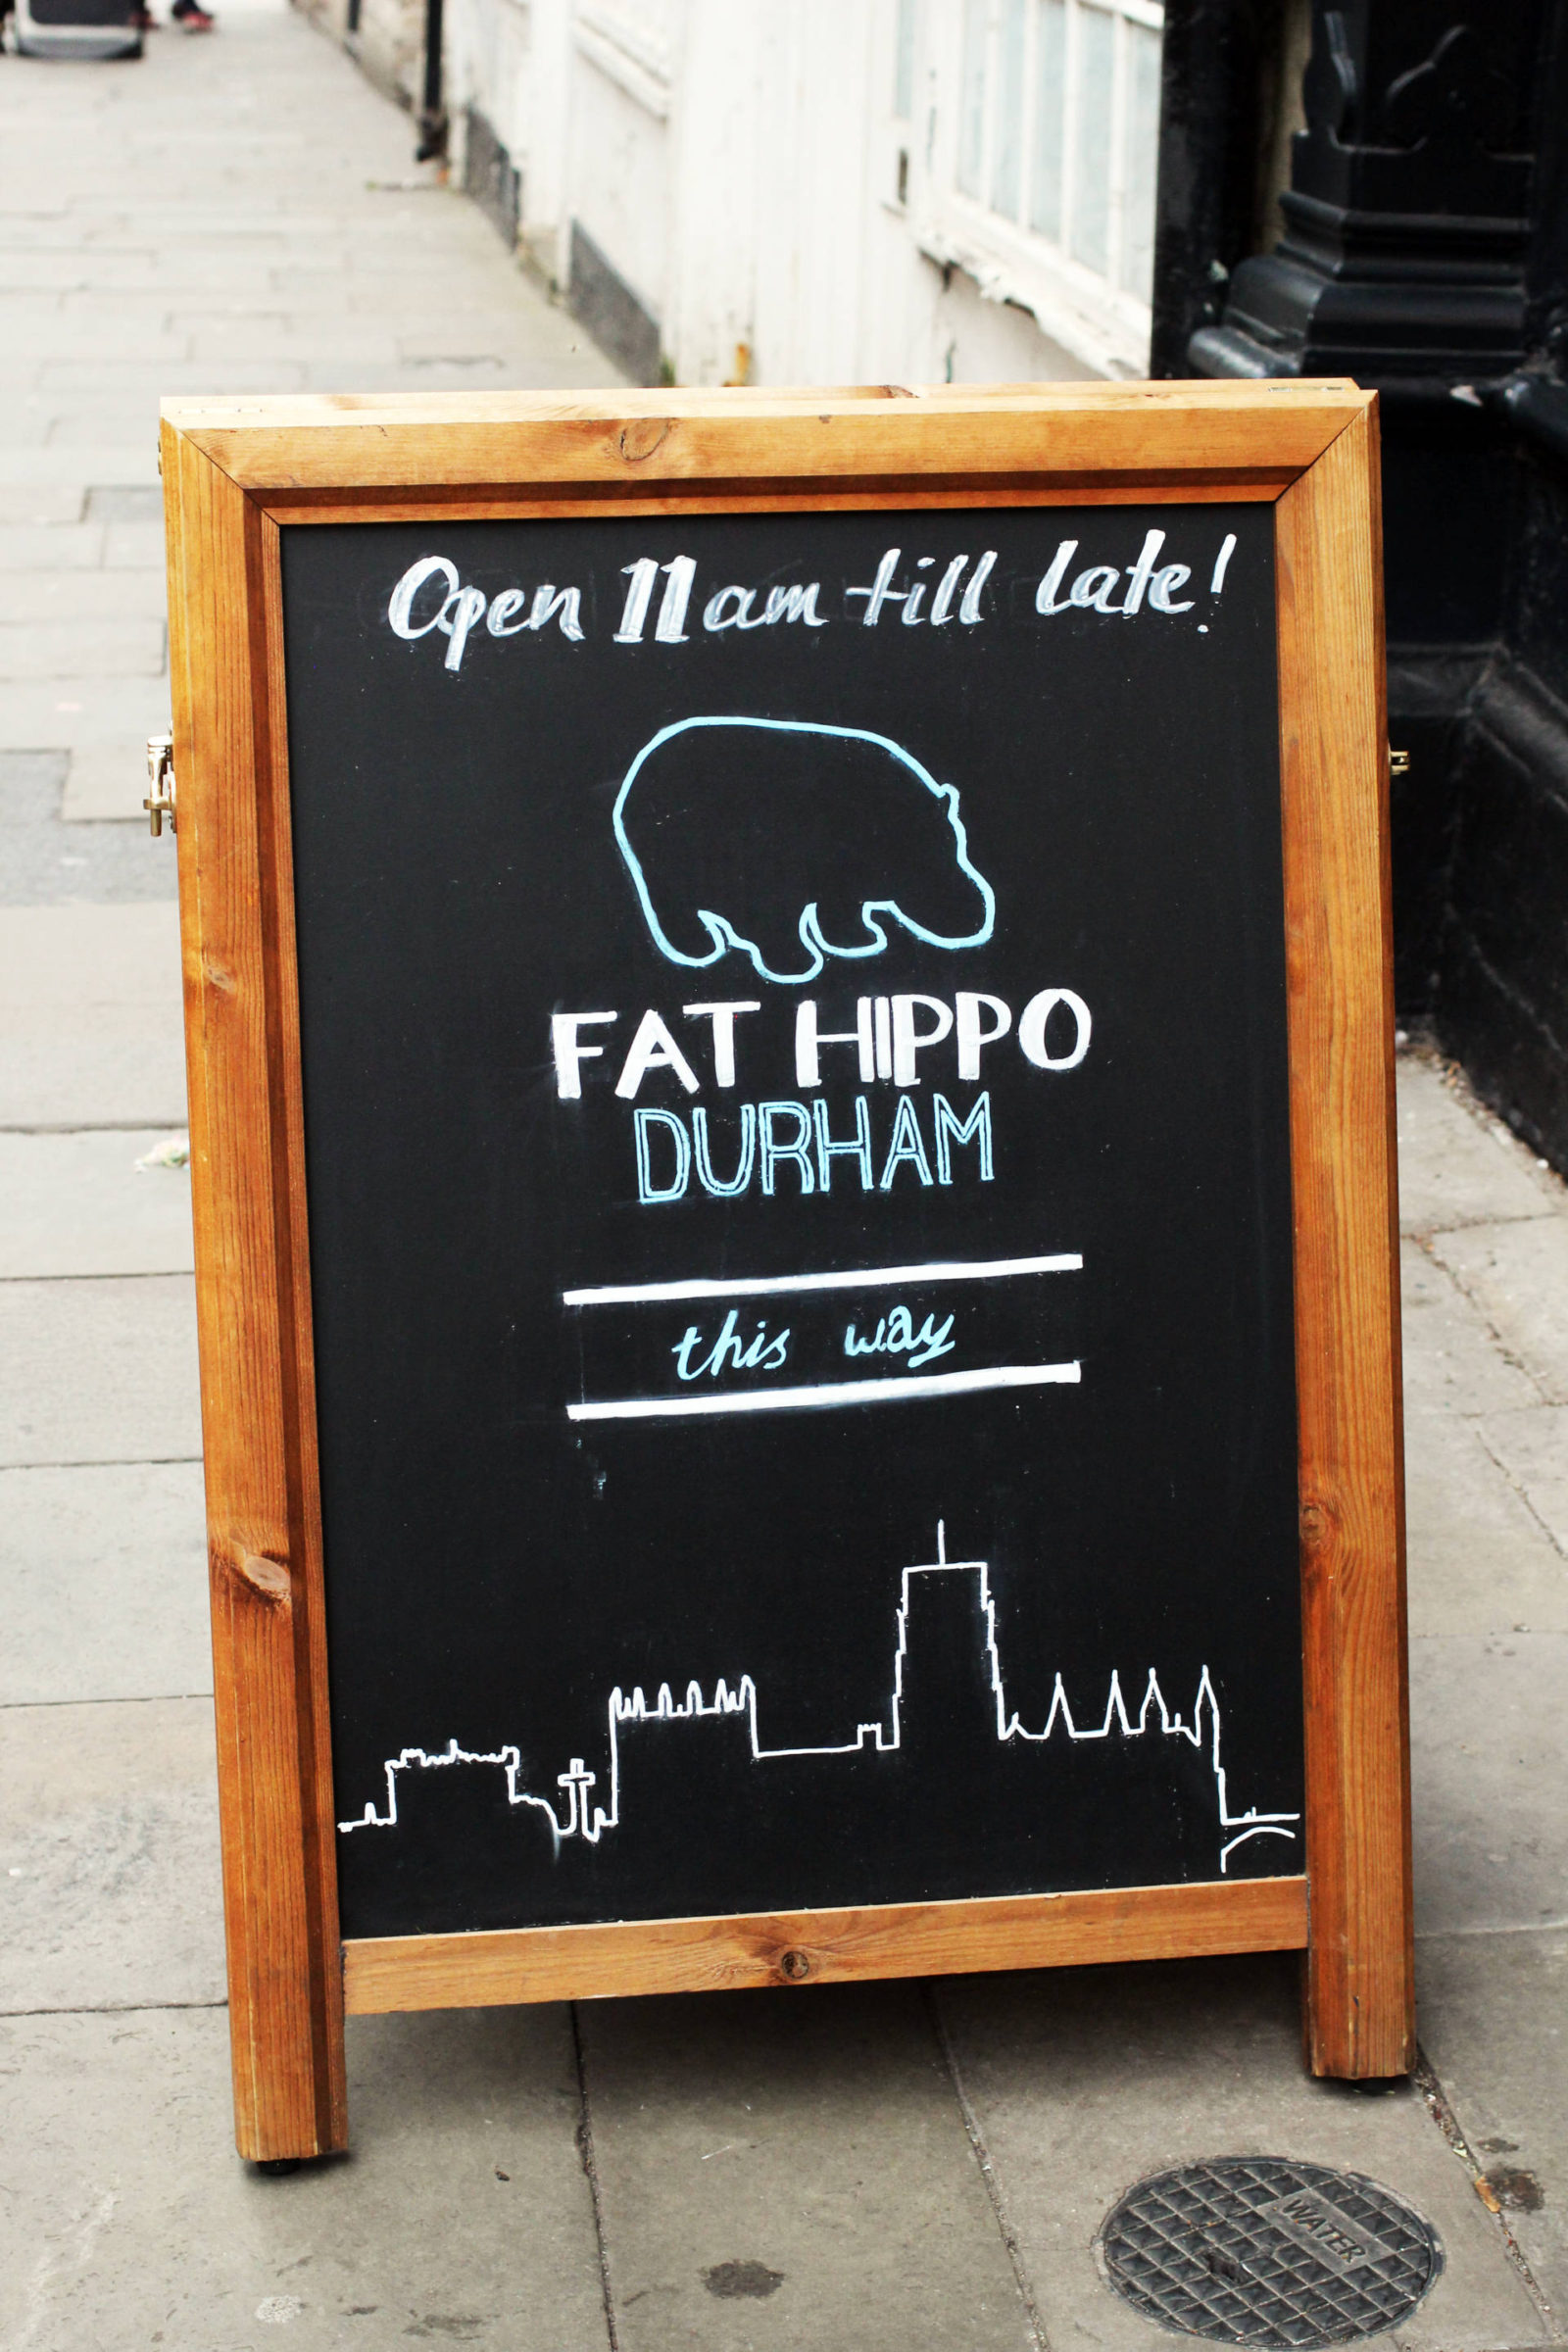 The Fat Hippo Durham